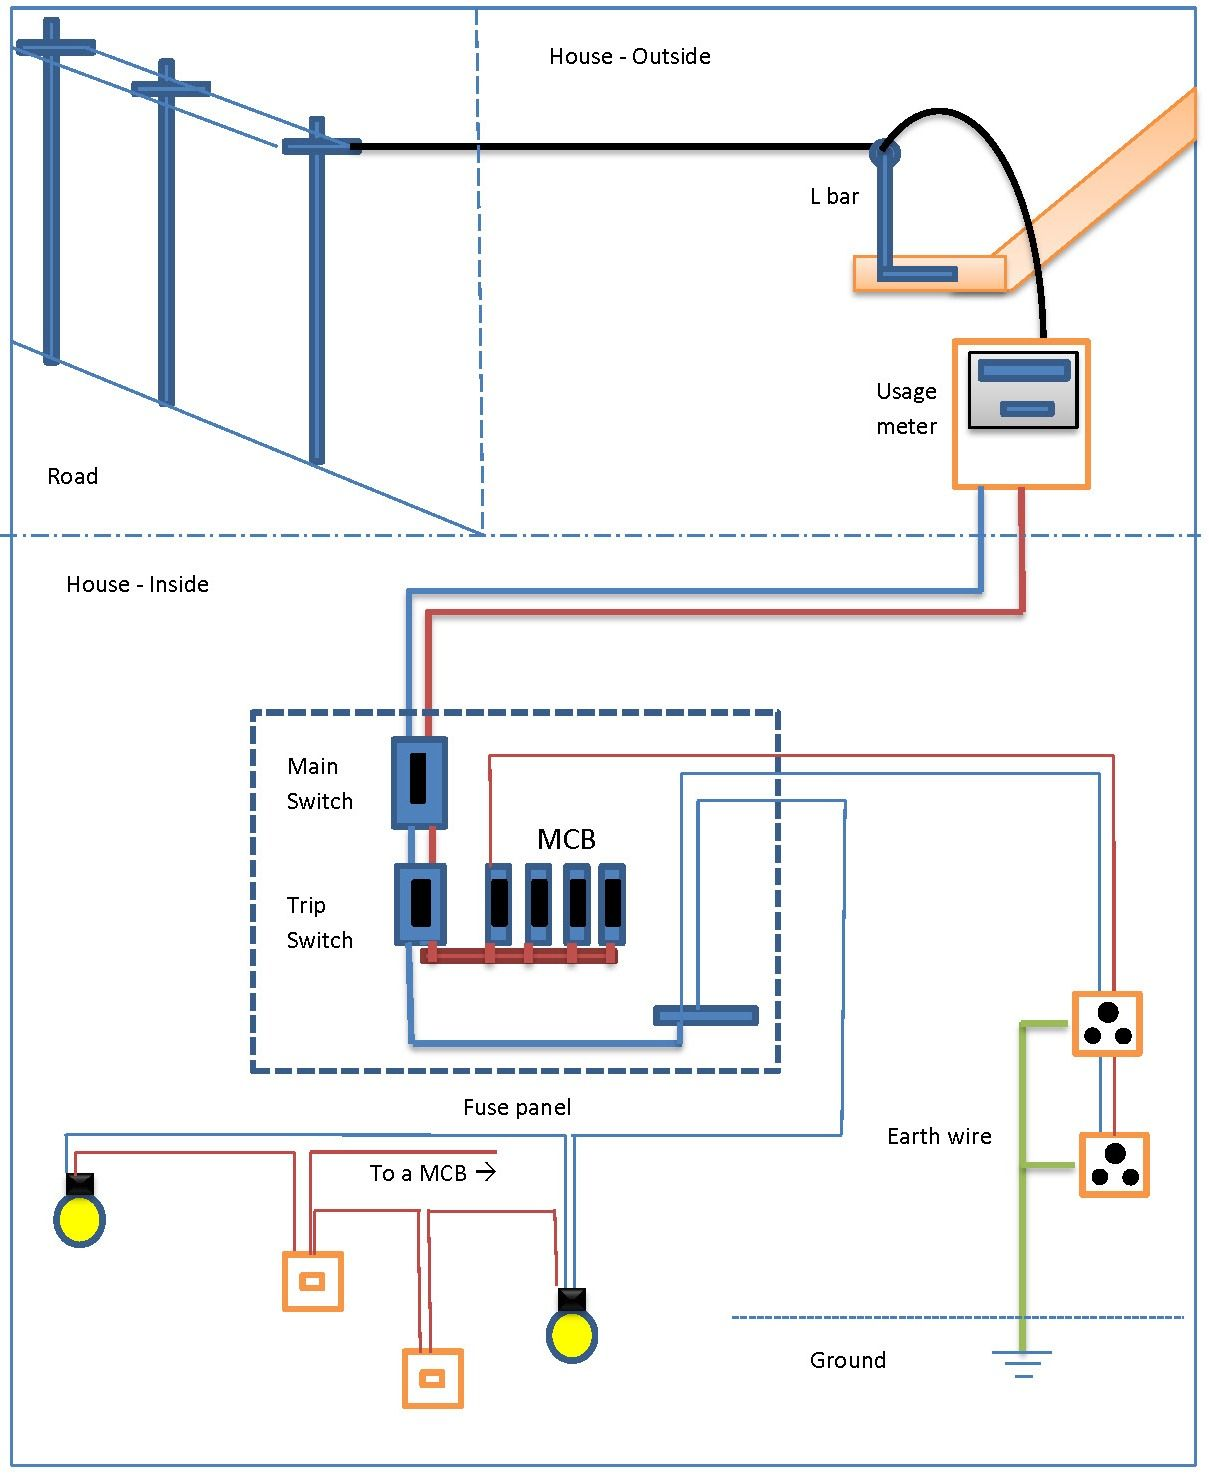 Senasum39s Blog House Wiring Diagram Sri Lanka